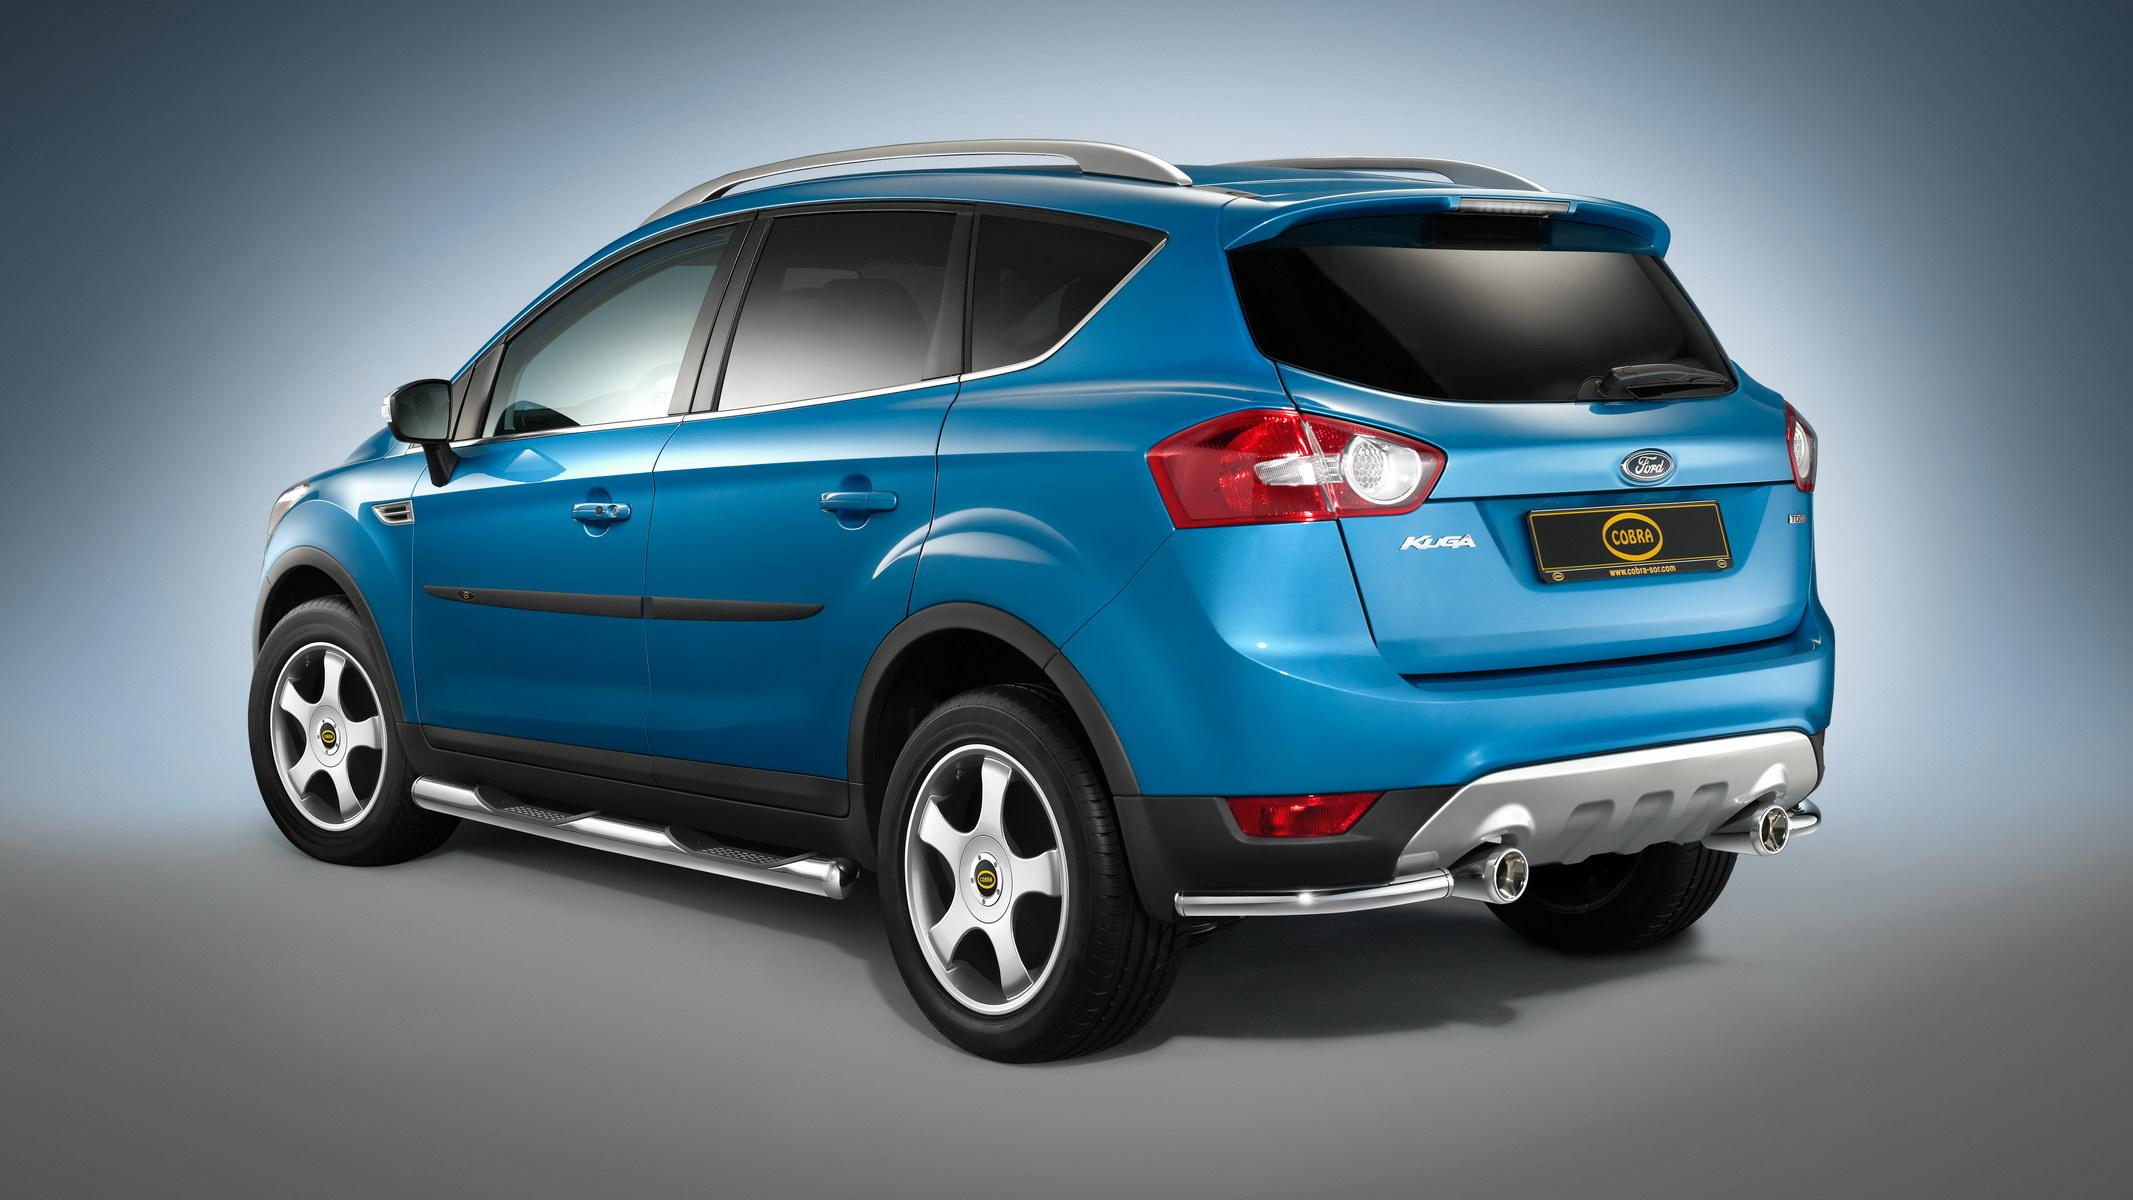 Cobra Ford Kuga wallpapers - Auto Power Girl